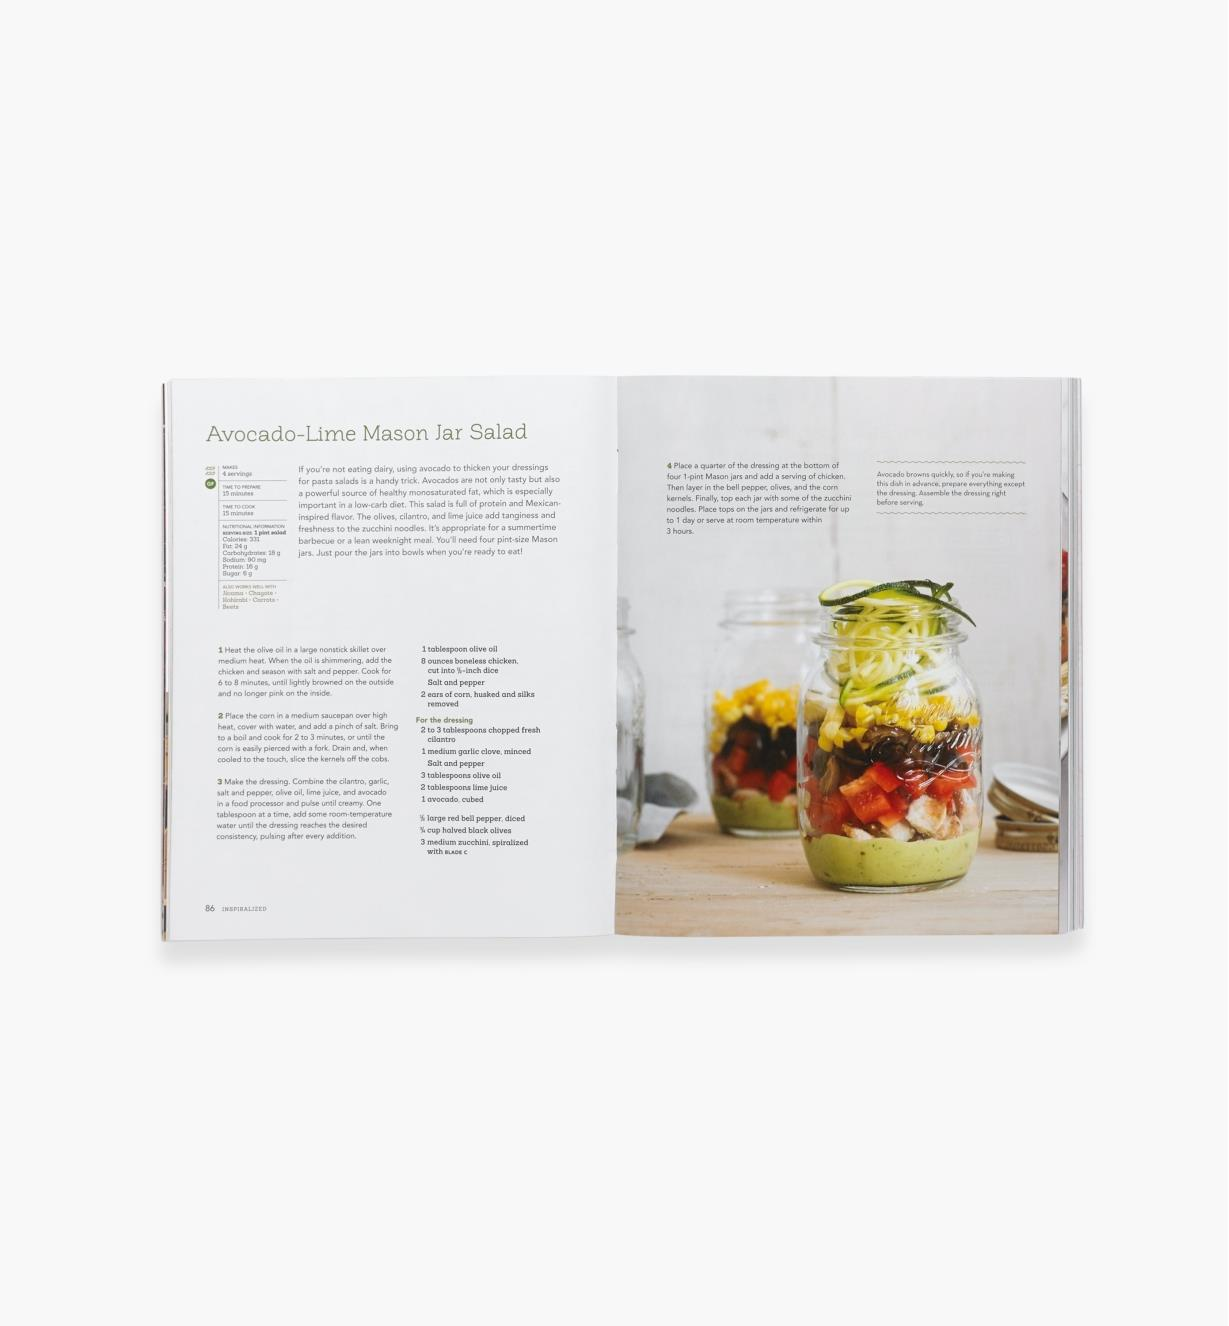 Open spread of Inspiralized showing recipe for avocado-lime mason jar salad